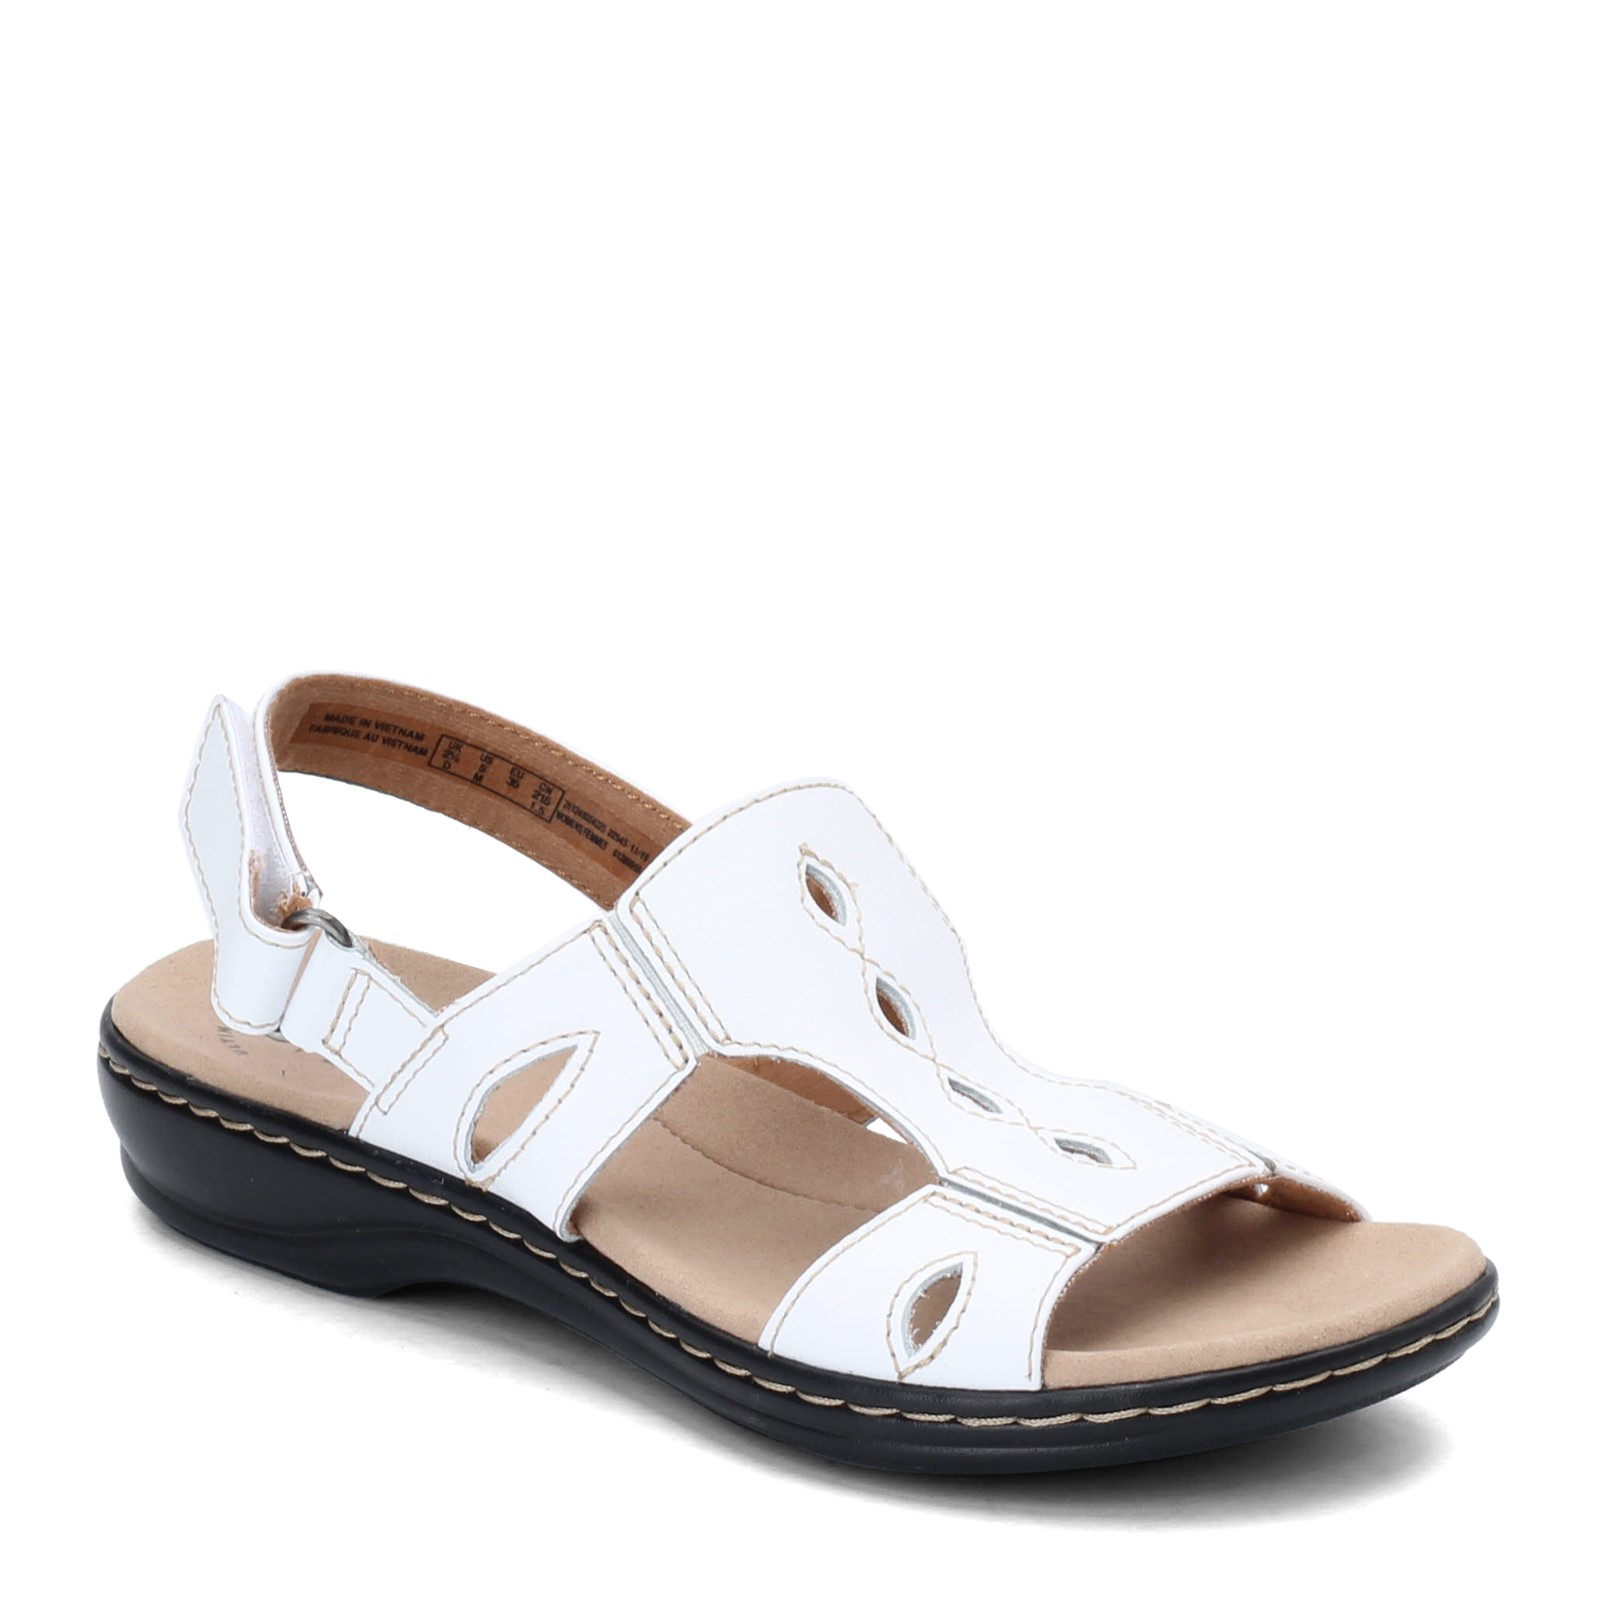 Women's Clarks, Leisa Lakelyn Sandal